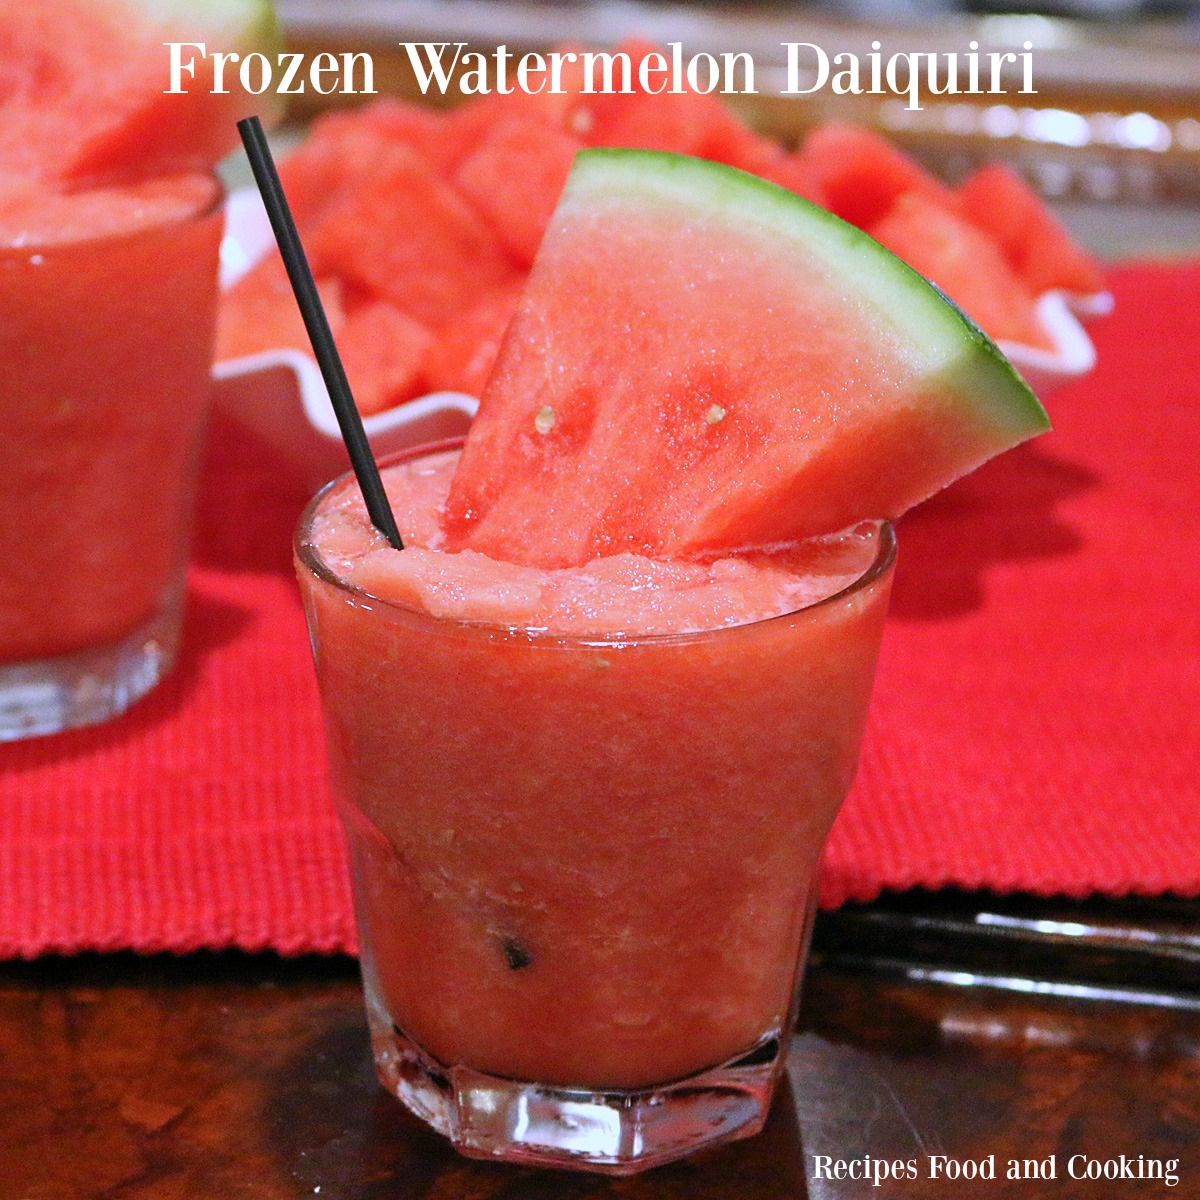 Frozen Watermelon Daiquiri's